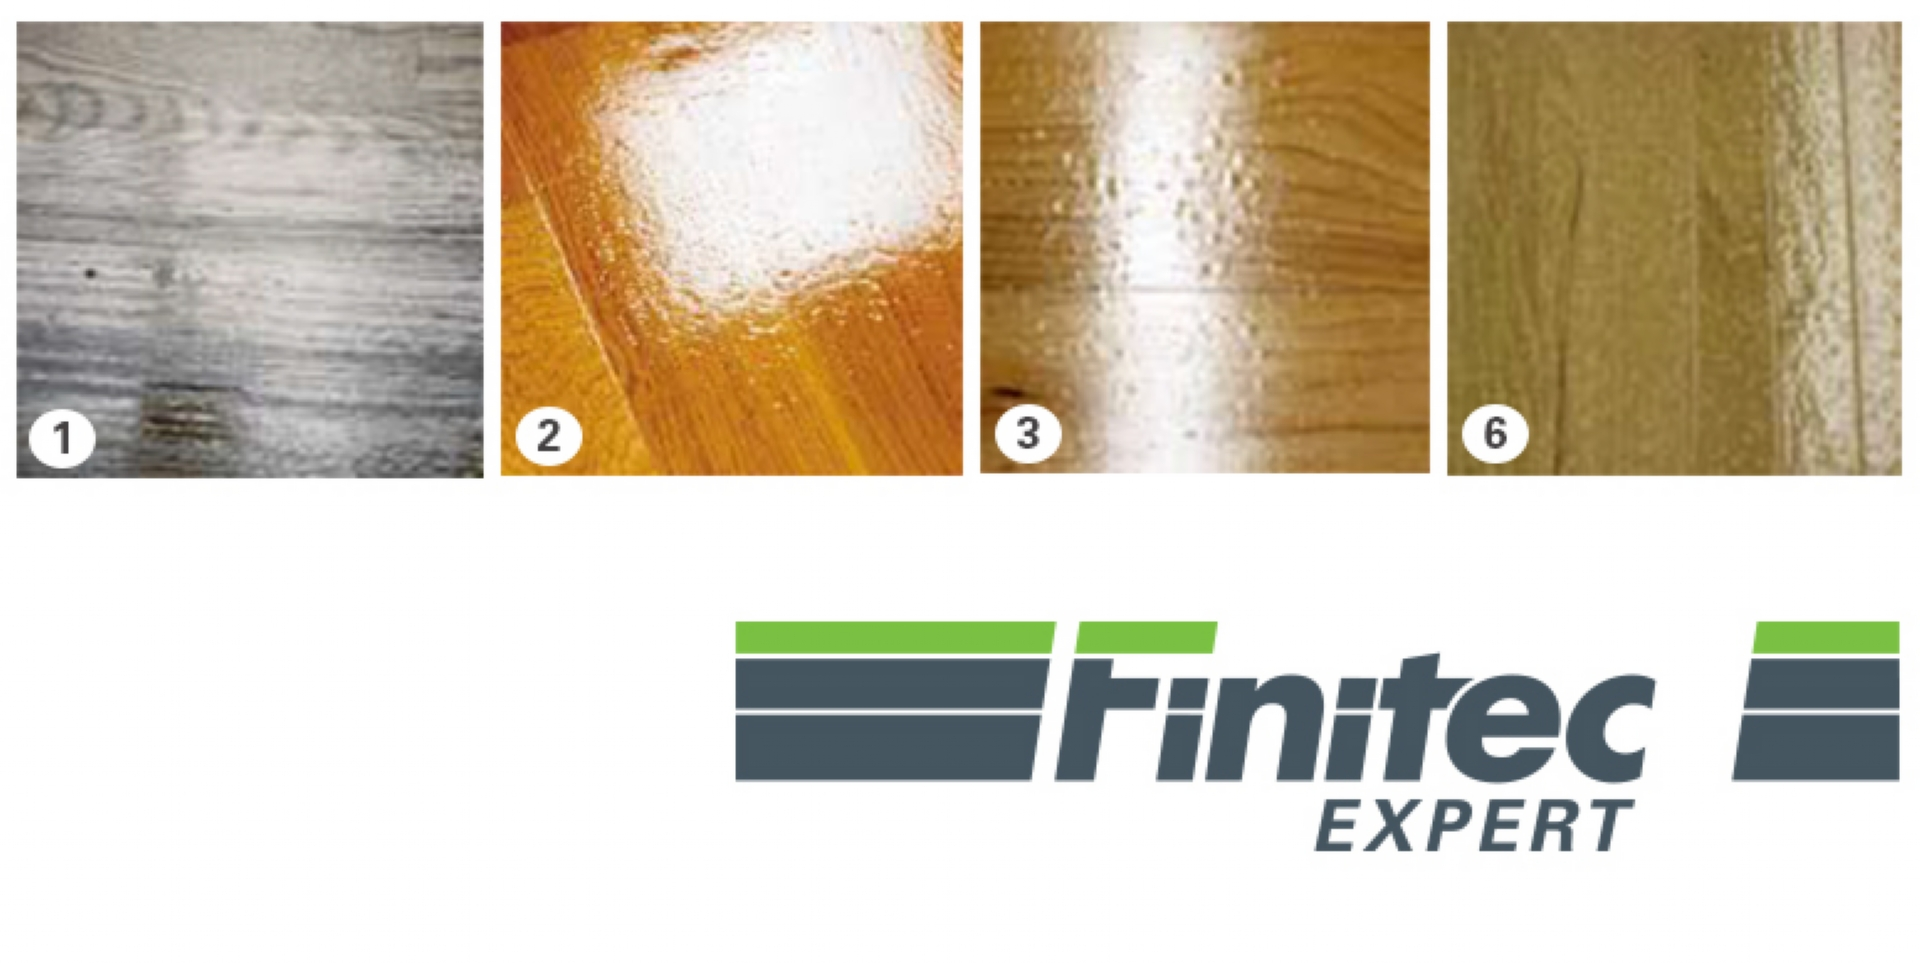 6 problems to look out for after applying a waterborne finish